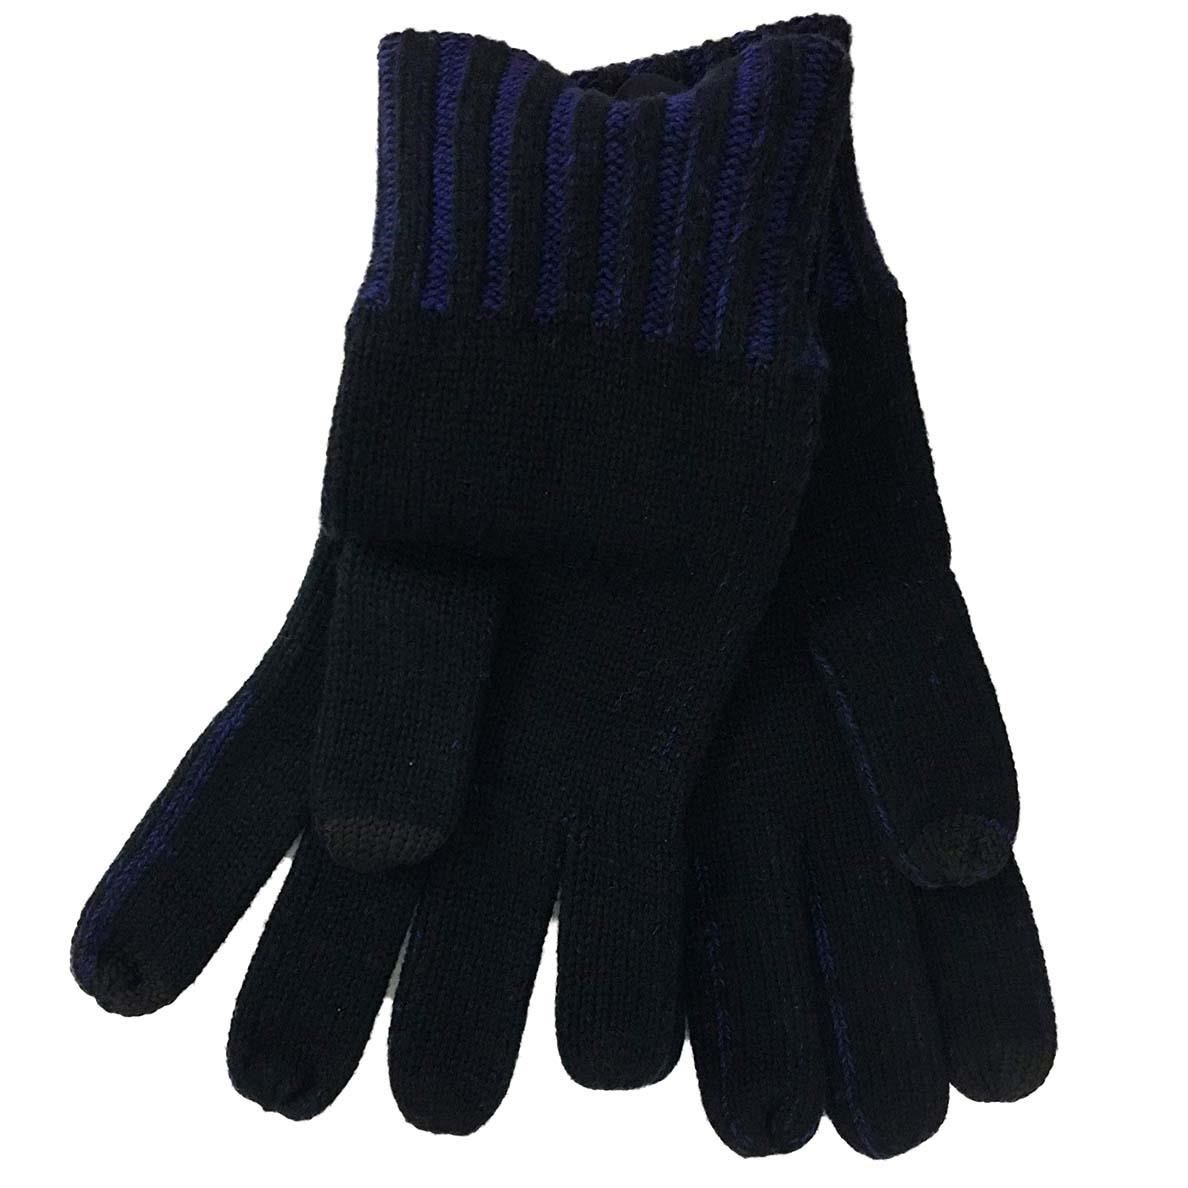 The best touchscreen Gloves to get through the winter